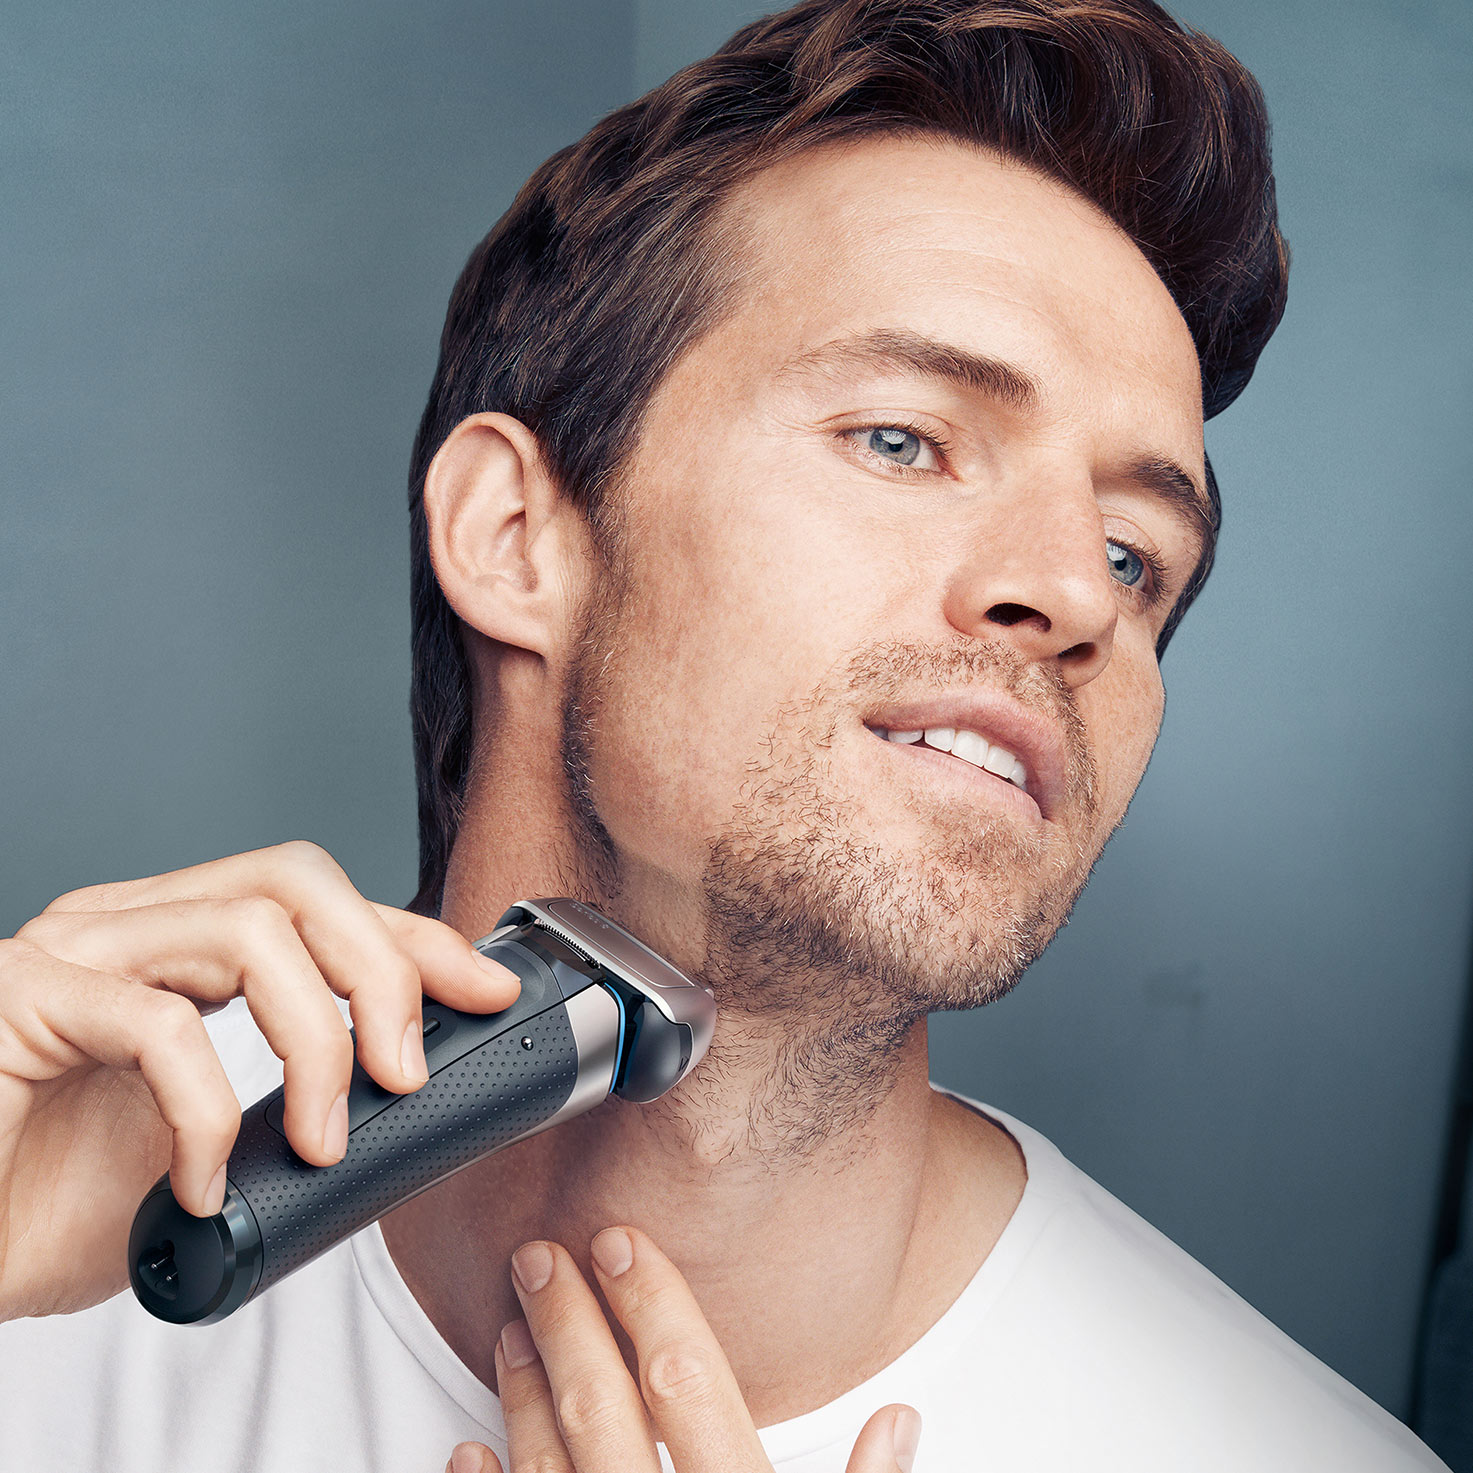 Series 8 8330s shaver - in use